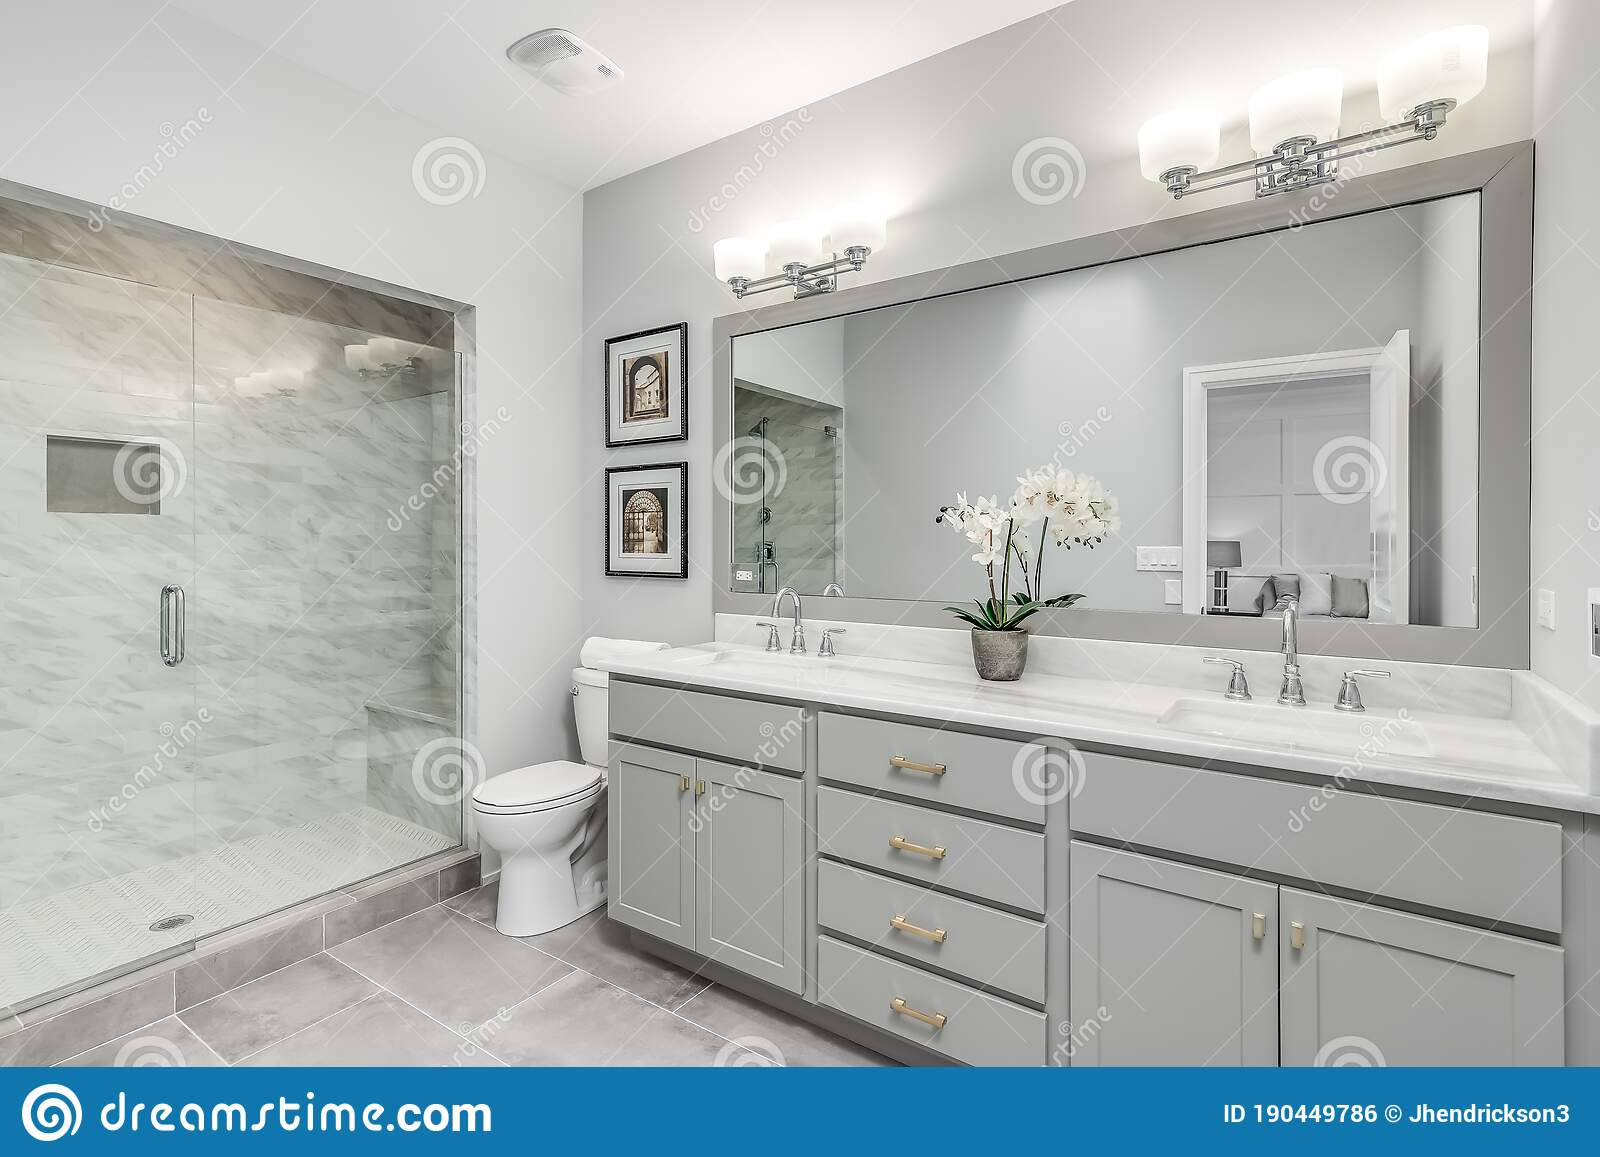 1 221 Bathroom Marble Vanity Photos Free Royalty Free Stock Photos From Dreamstime